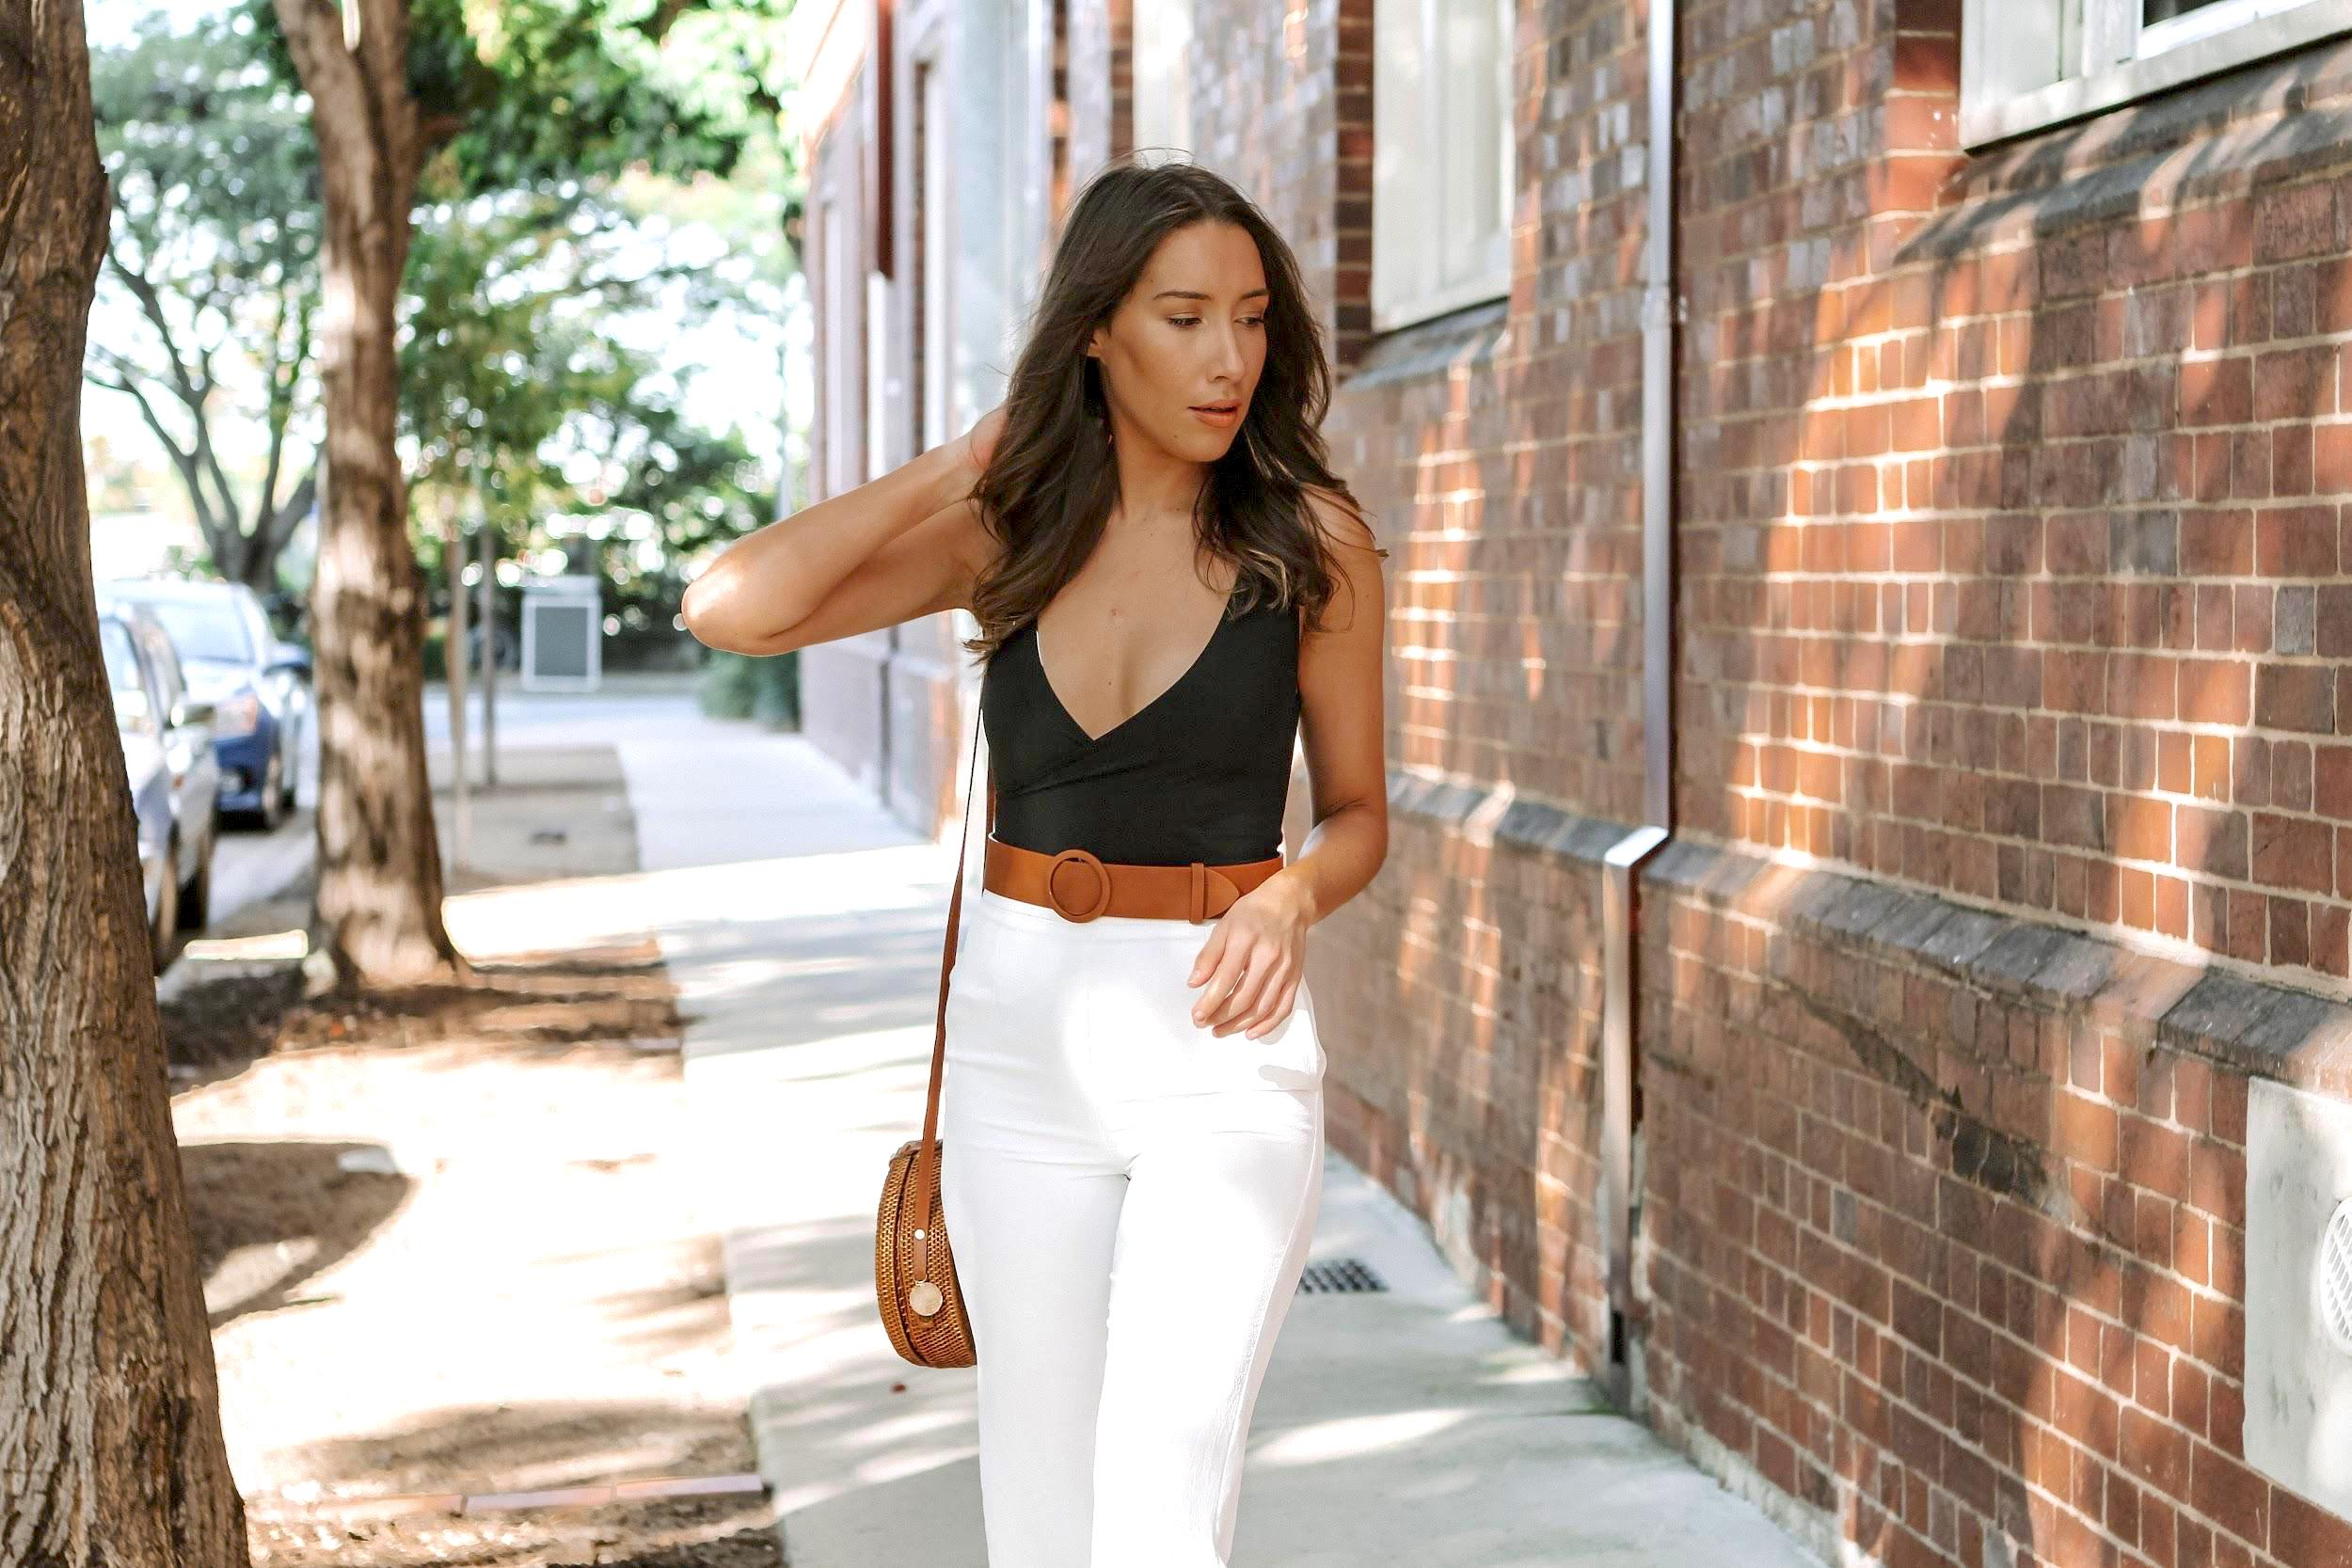 Swimswuit as a top outfit | A Week Of Consciously Curated Outfits With Amber, Founder Of BAIIA And The Conscious Cut on The Good Trade